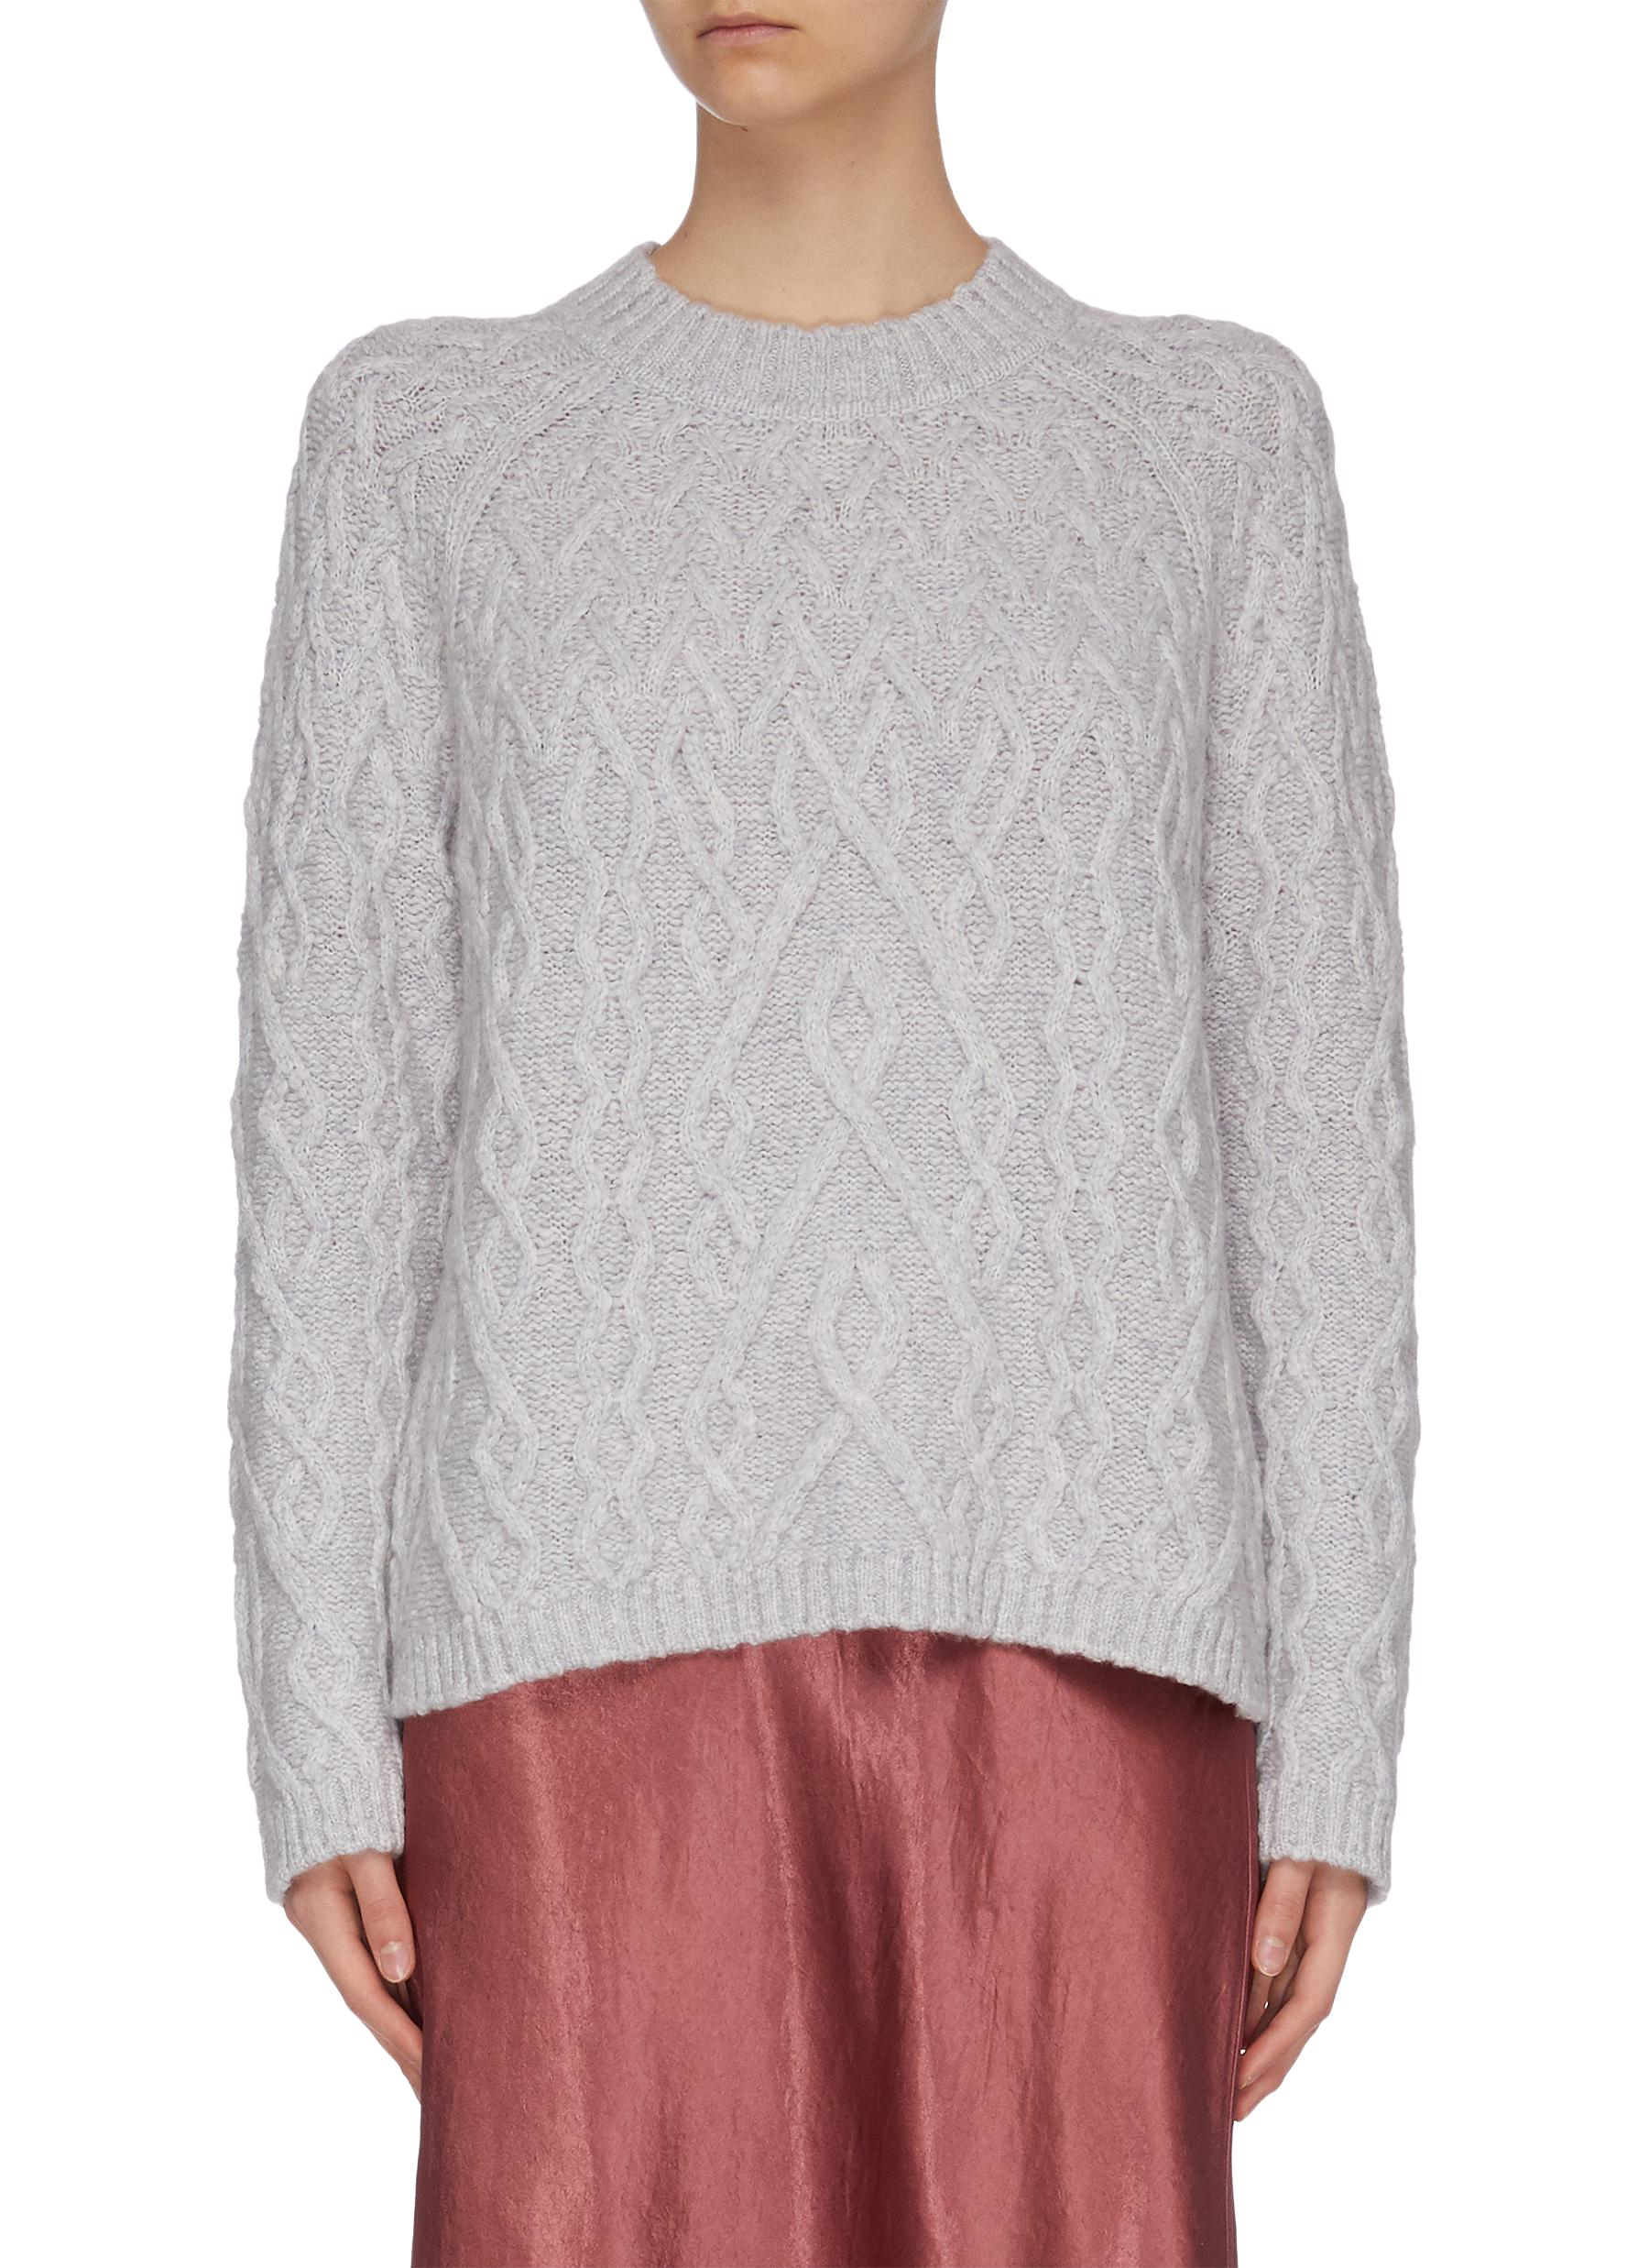 Buy Vince Knitwear Crew neck cable knit cashmere sweater